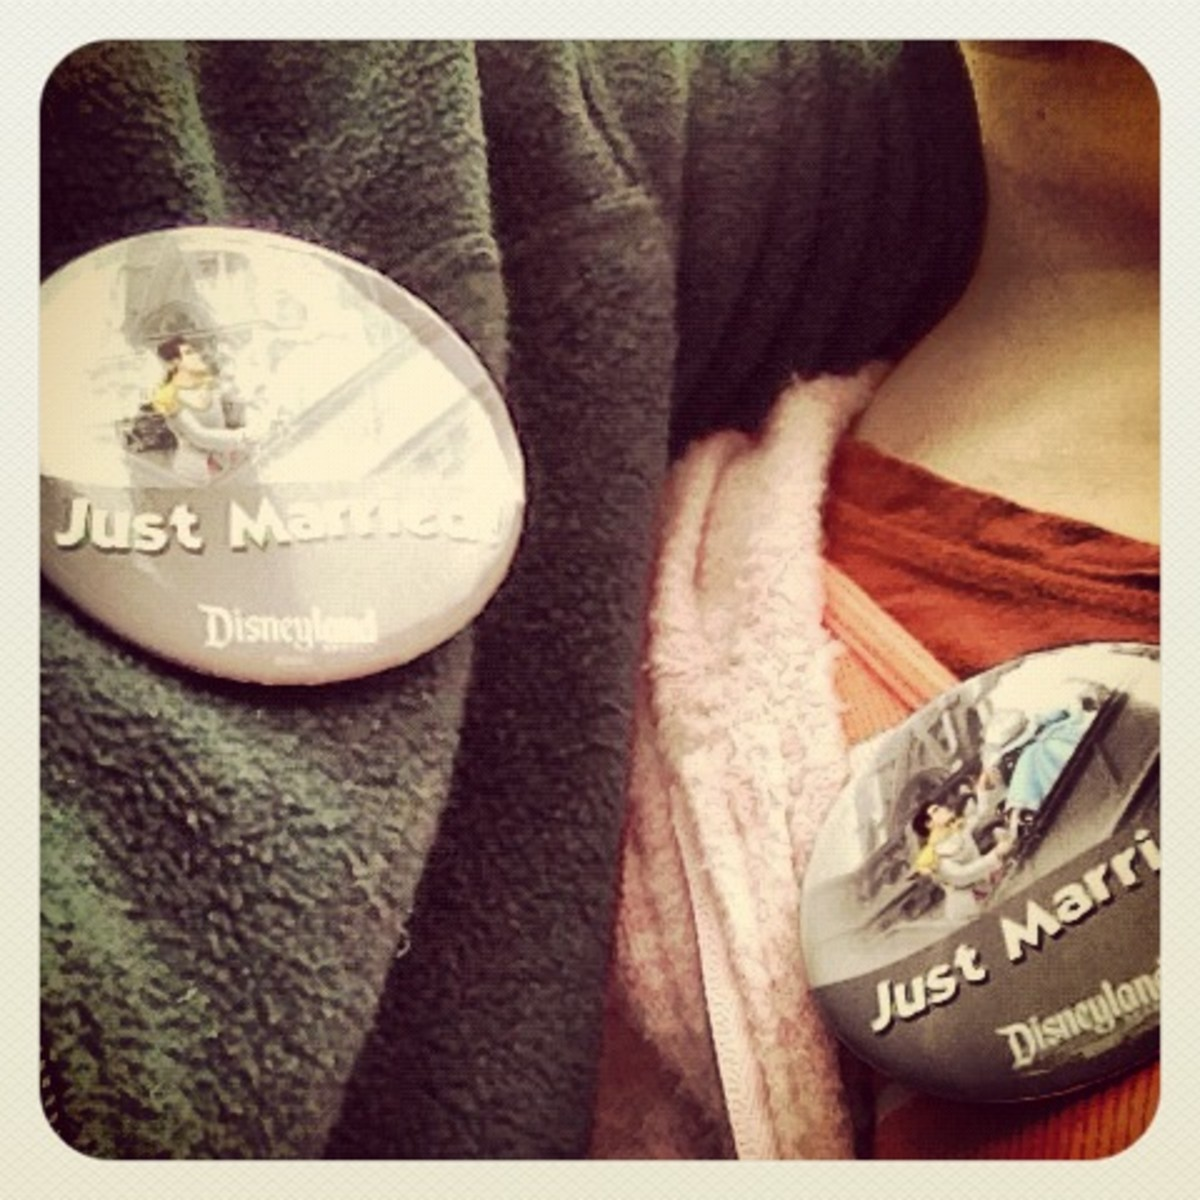 wearing our buttons